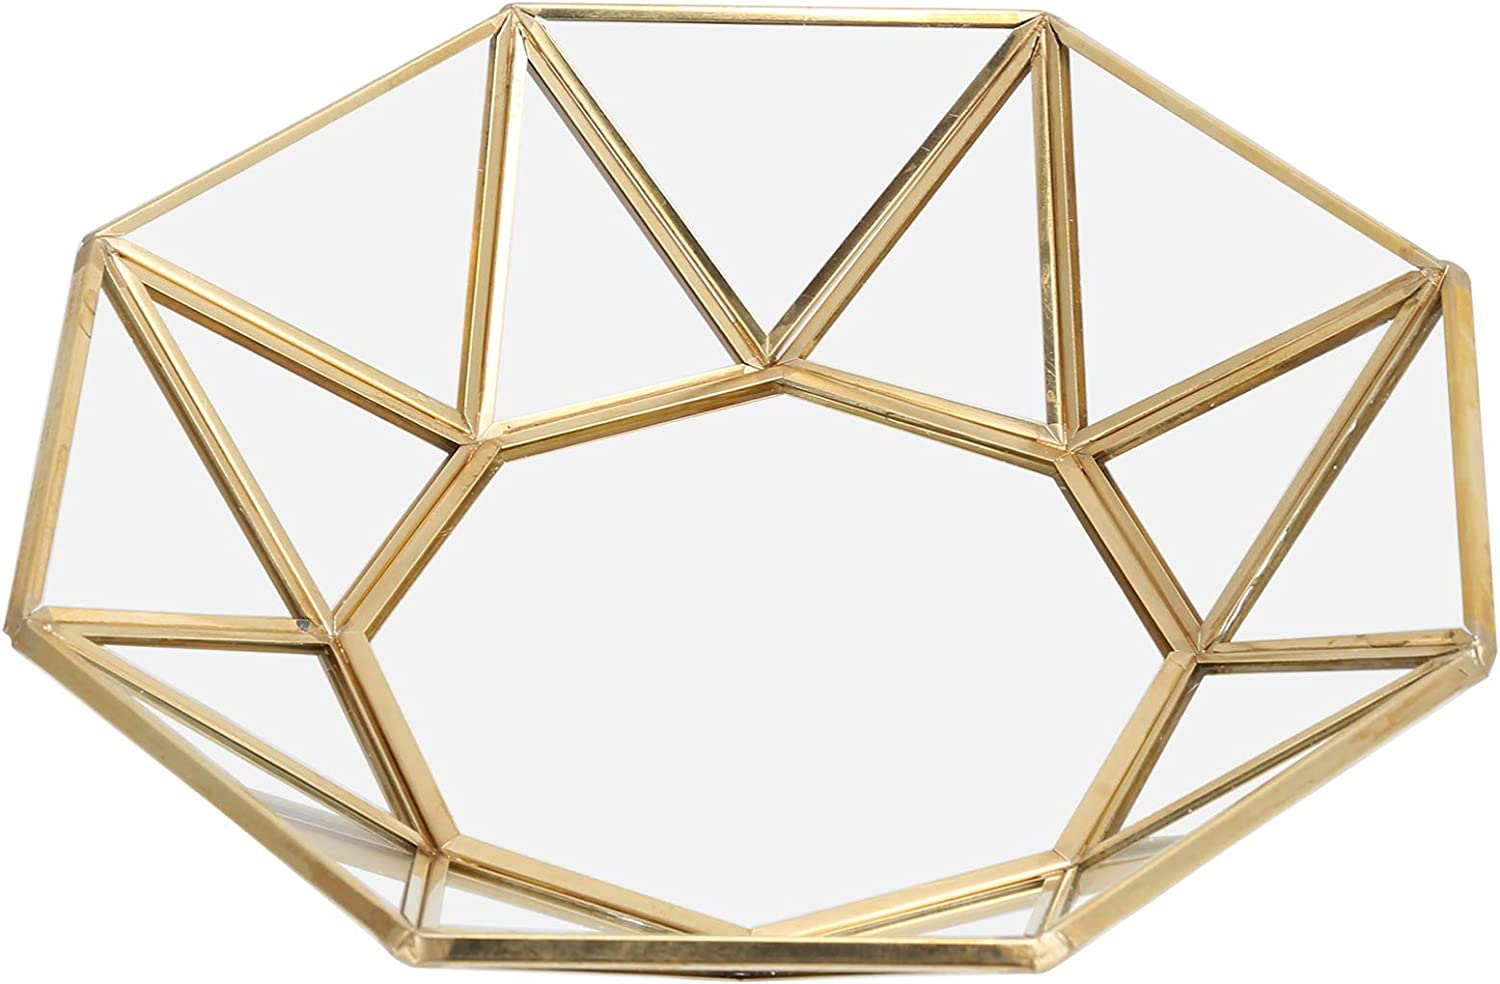 Teror Glass Max 70% OFF Outlet 64% OFF Storage Tray Decorative Octagonal